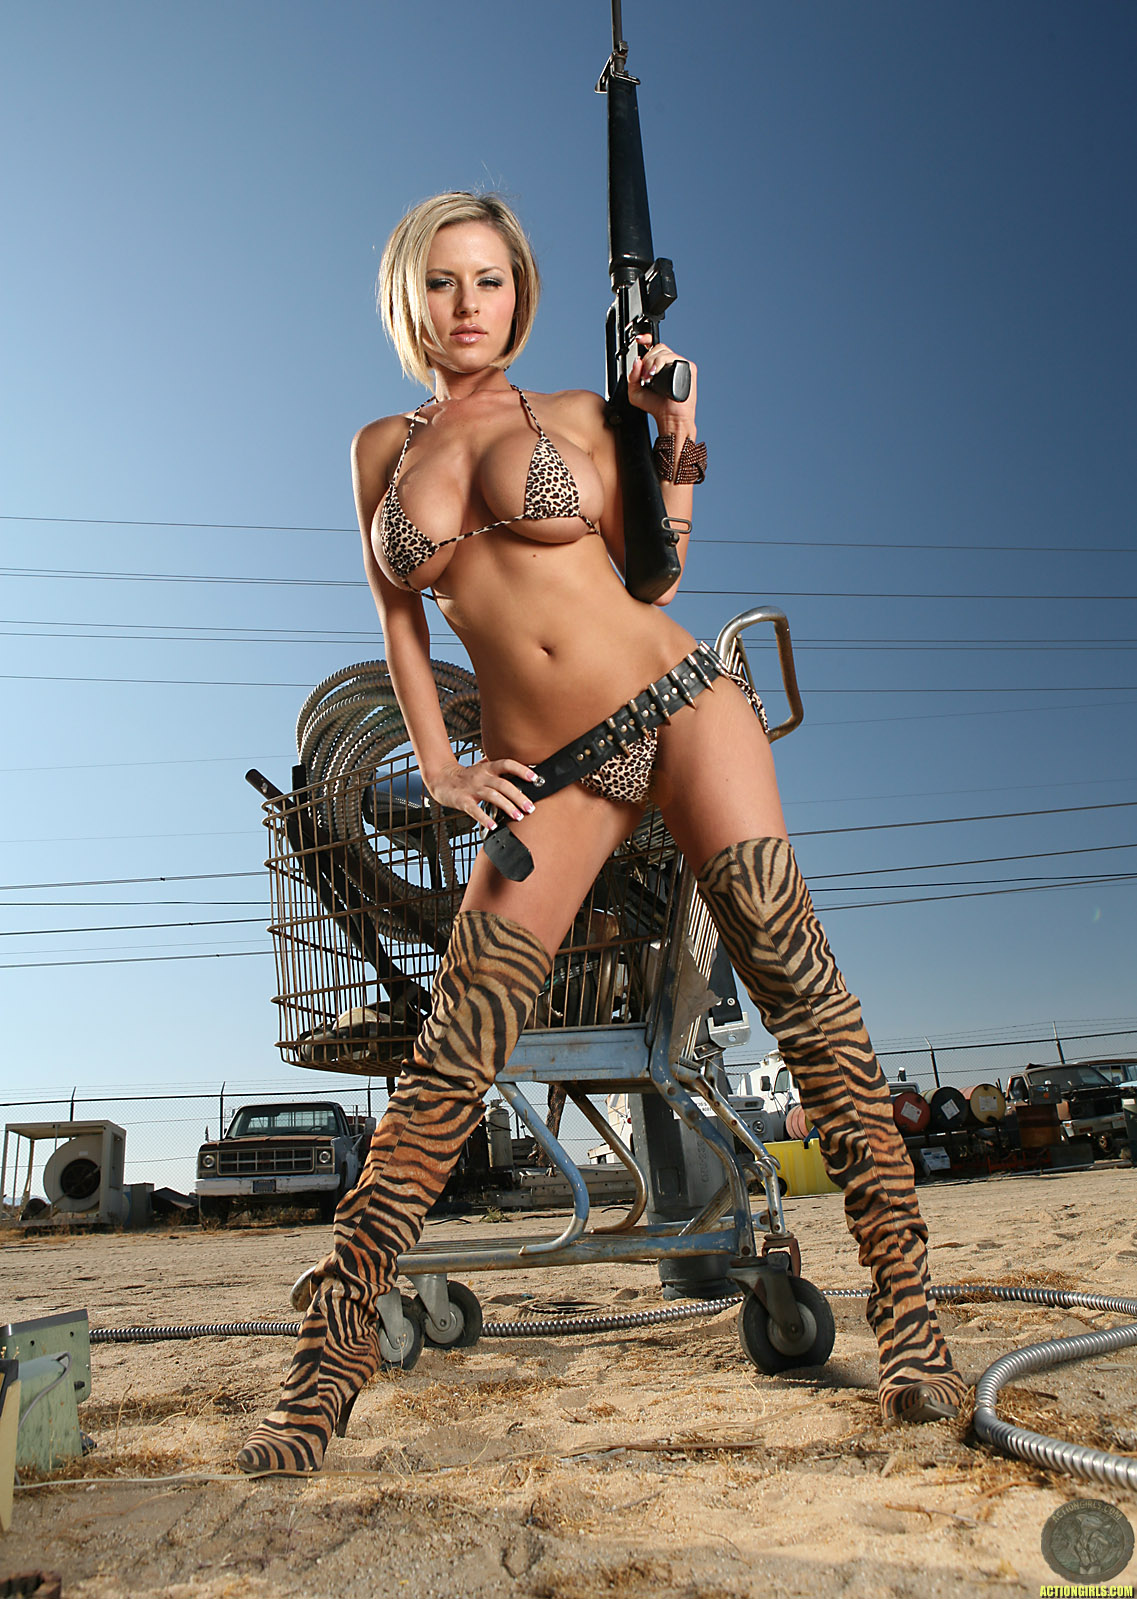 Xxx guns with girl hd wallpaper sex gallery